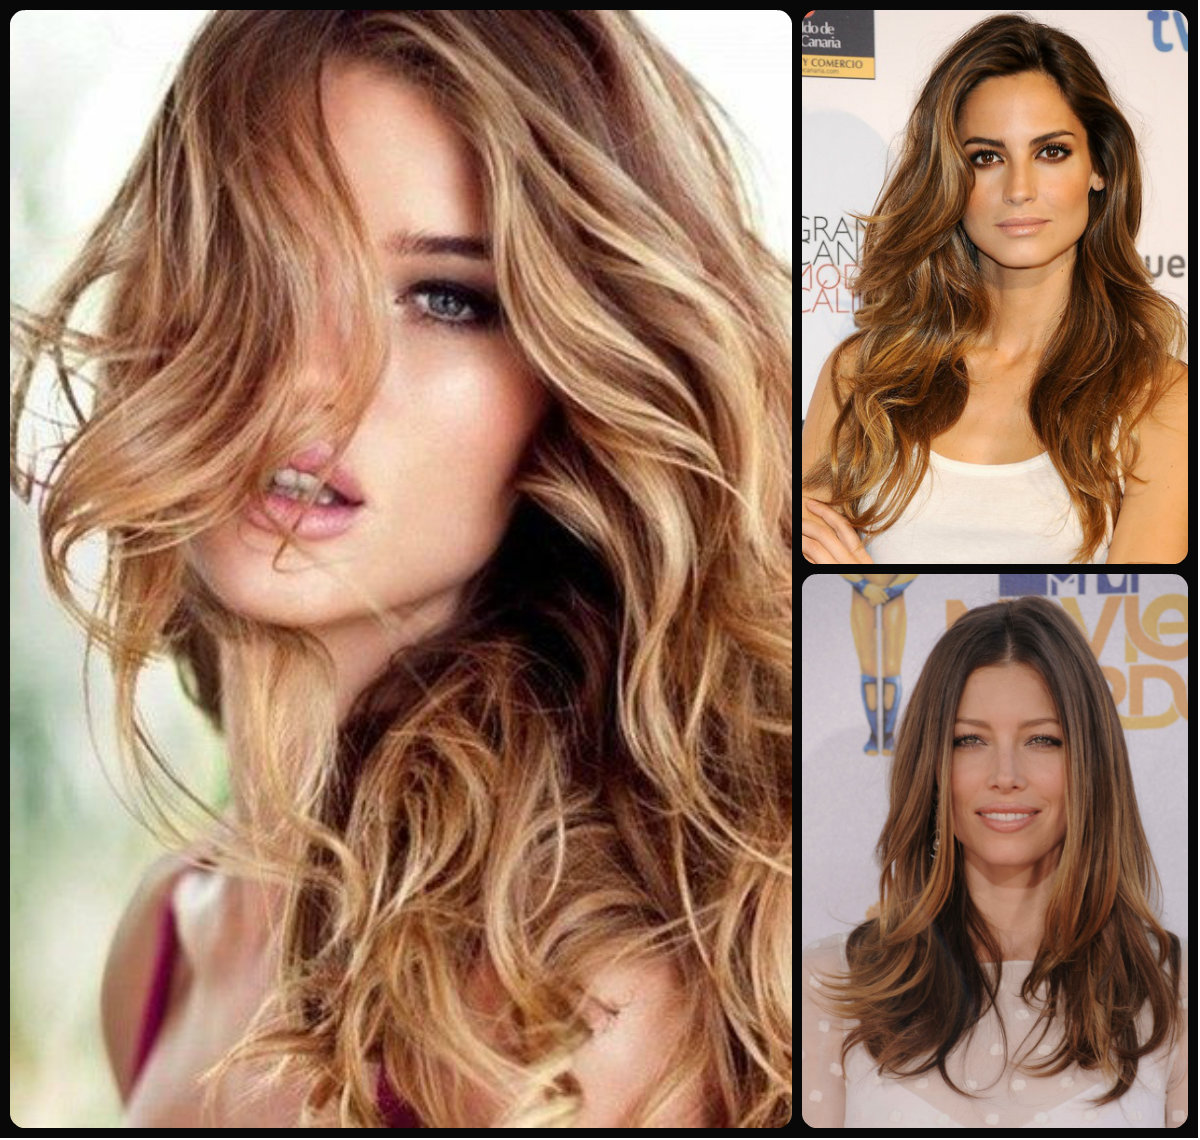 Hair Colors | Hairstyles 2015 / 2016, Hair Colors and Haircuts